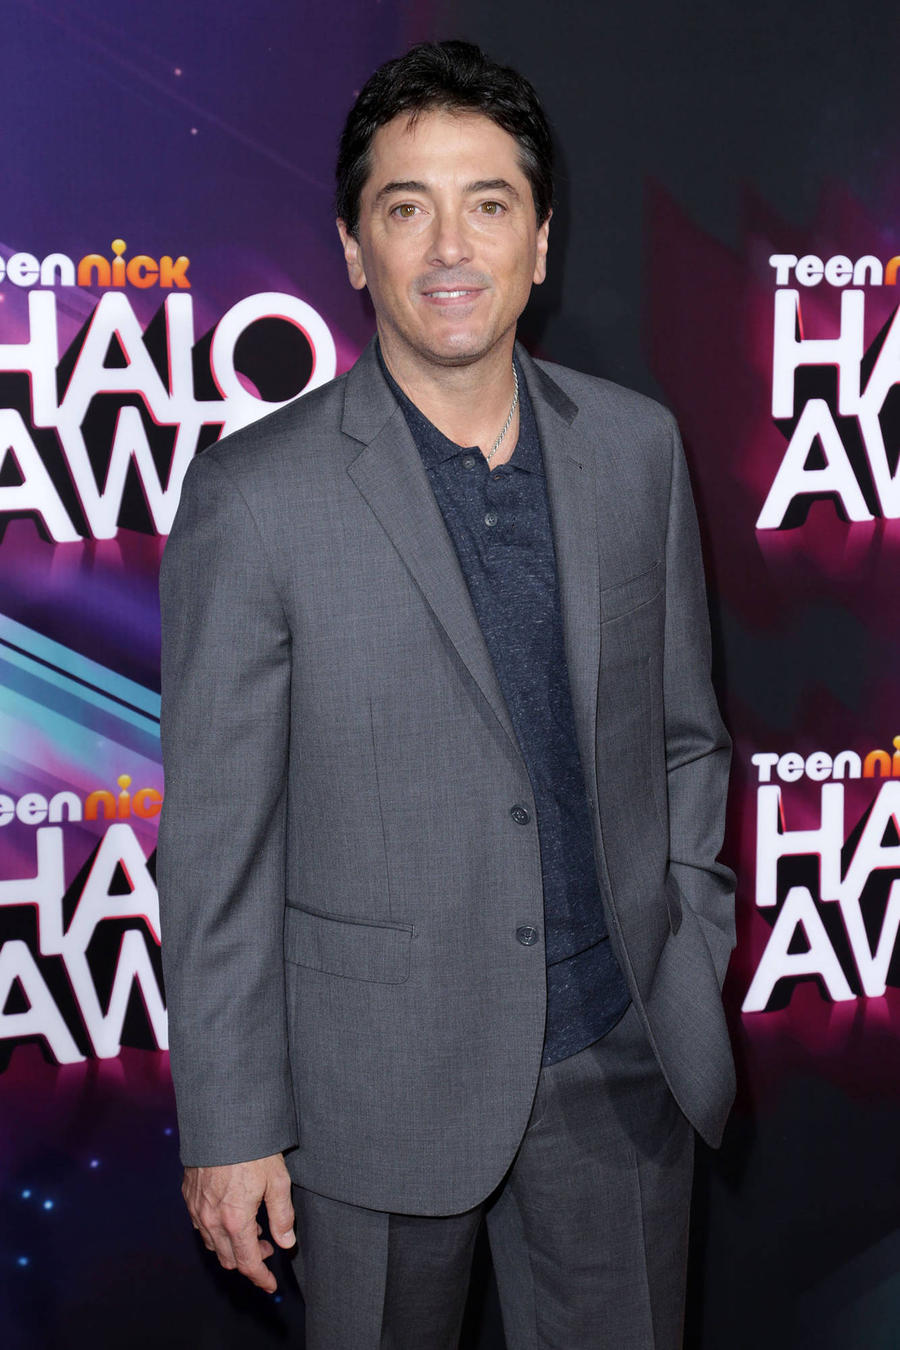 Scott Baio Accuses Chad Smith's Wife Of Attack Over Trump Support